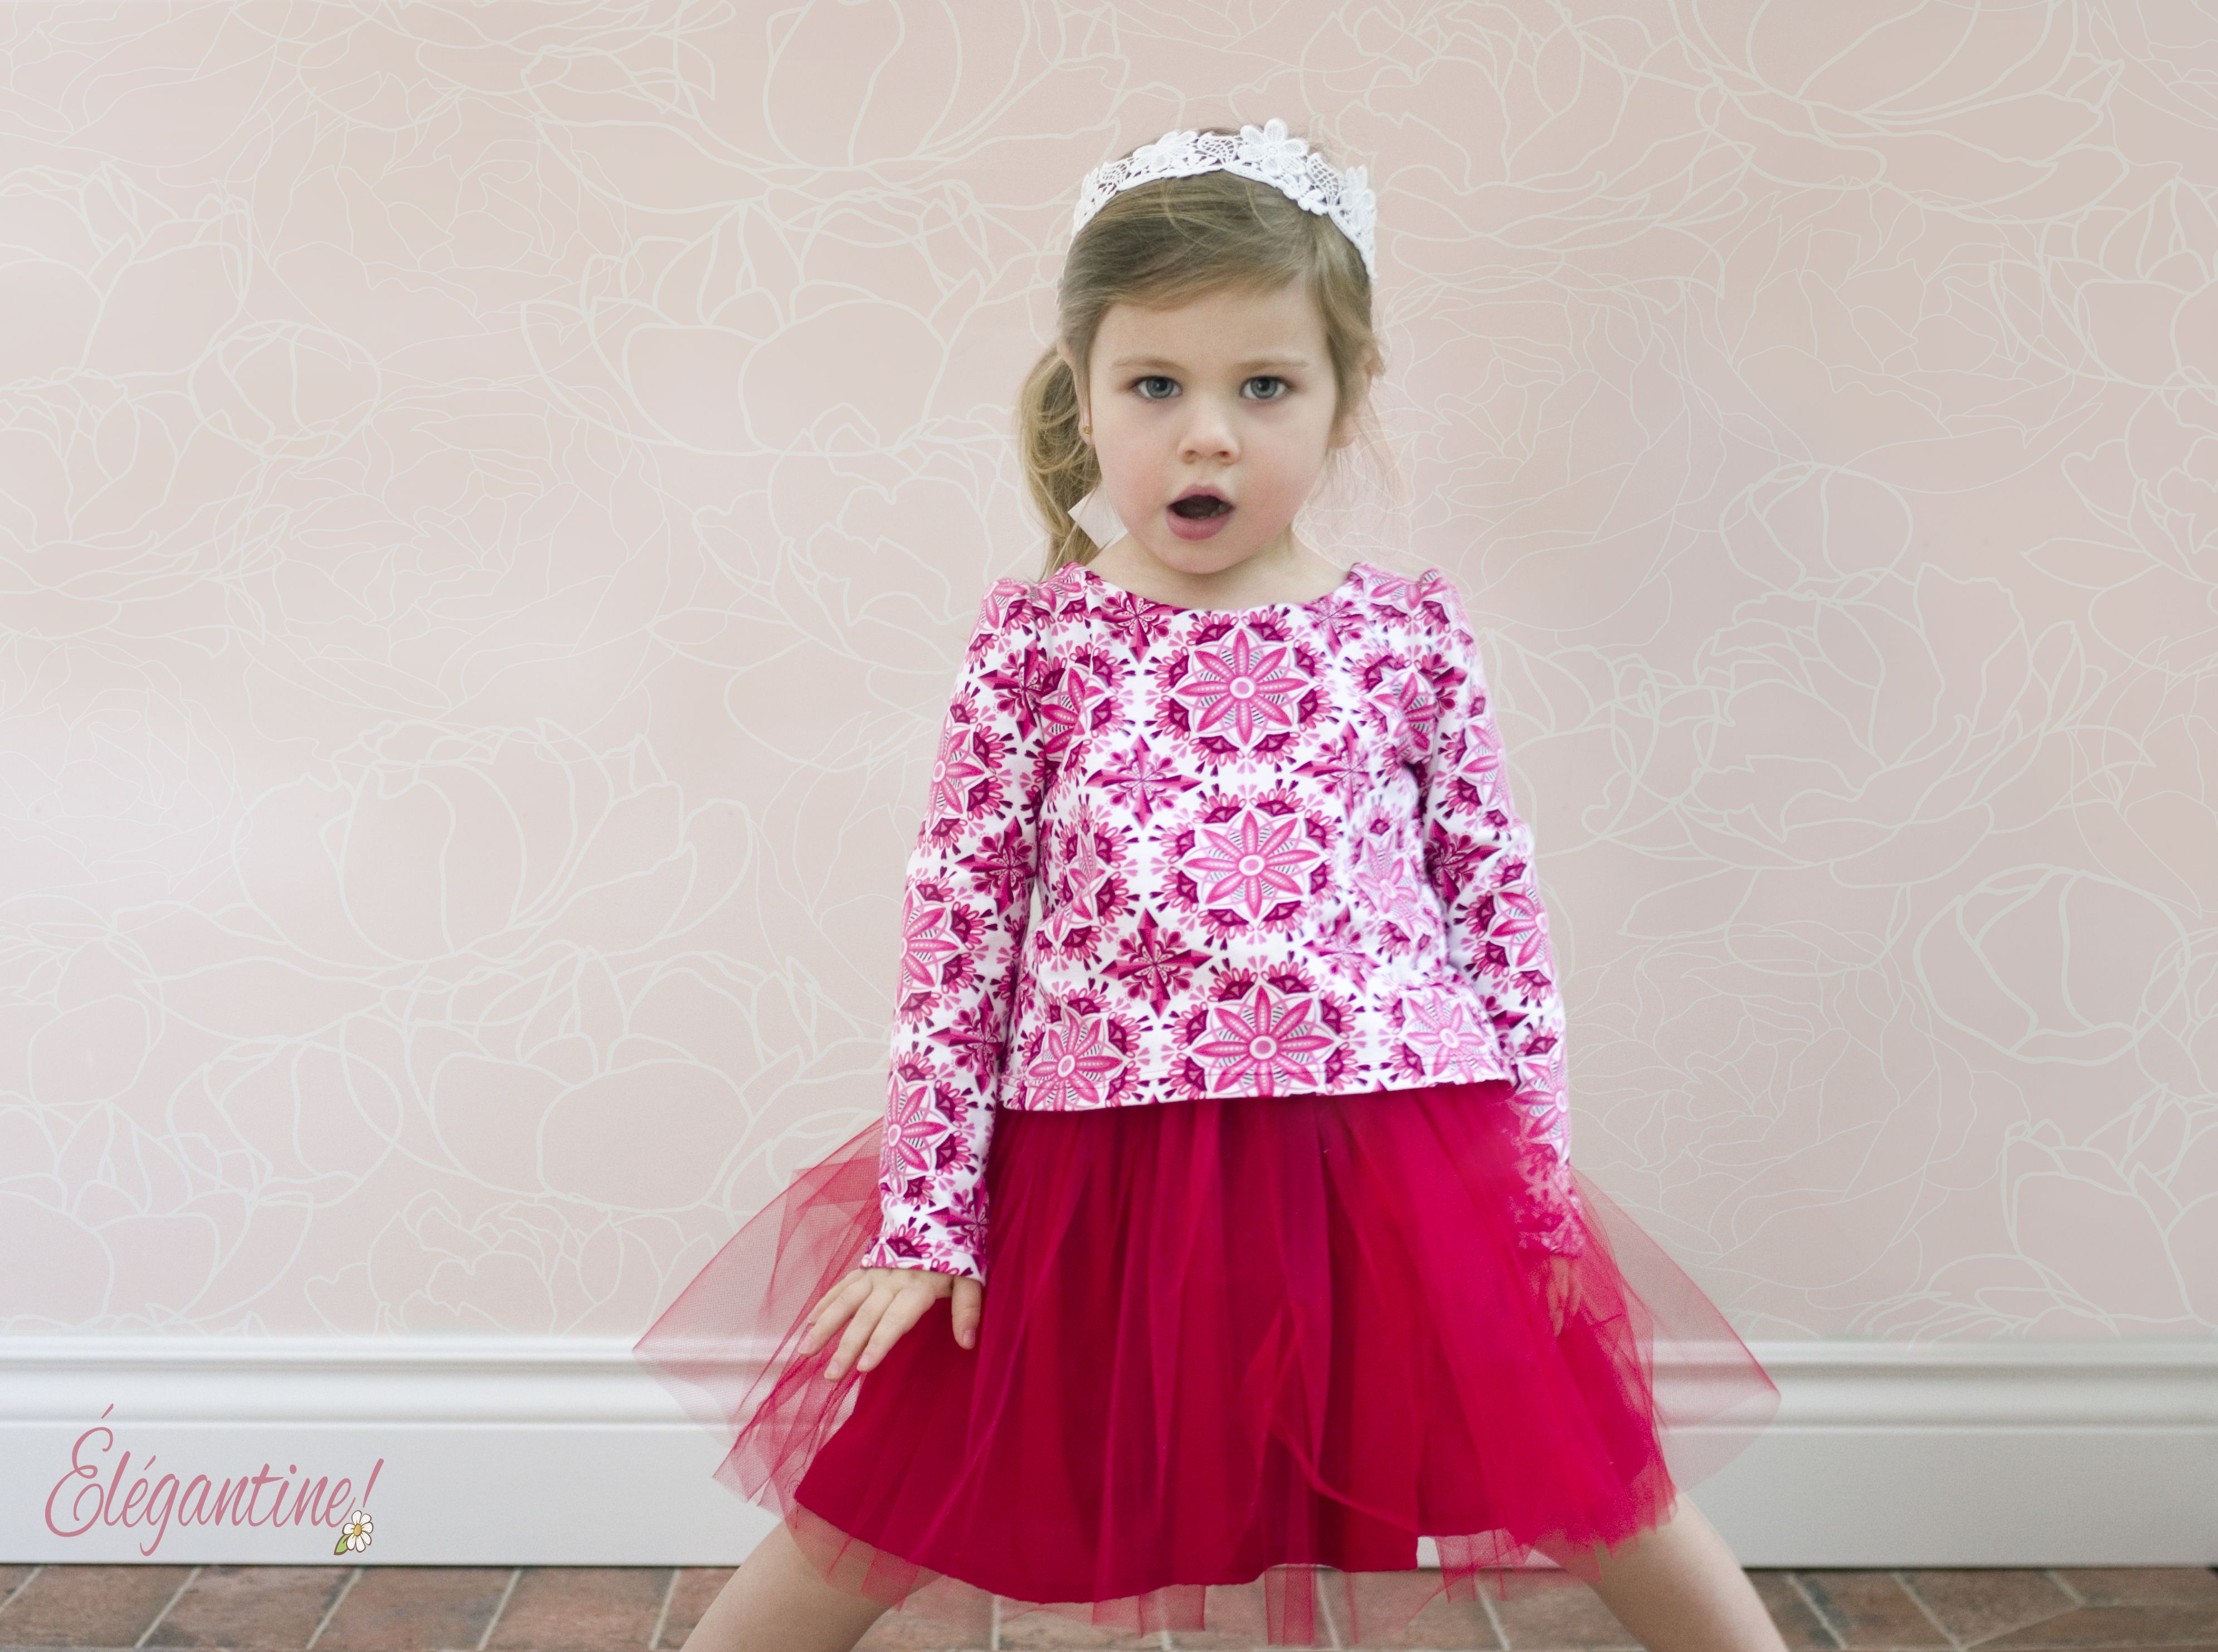 The confetti dot is a versatile knitwoven dress pattern that is